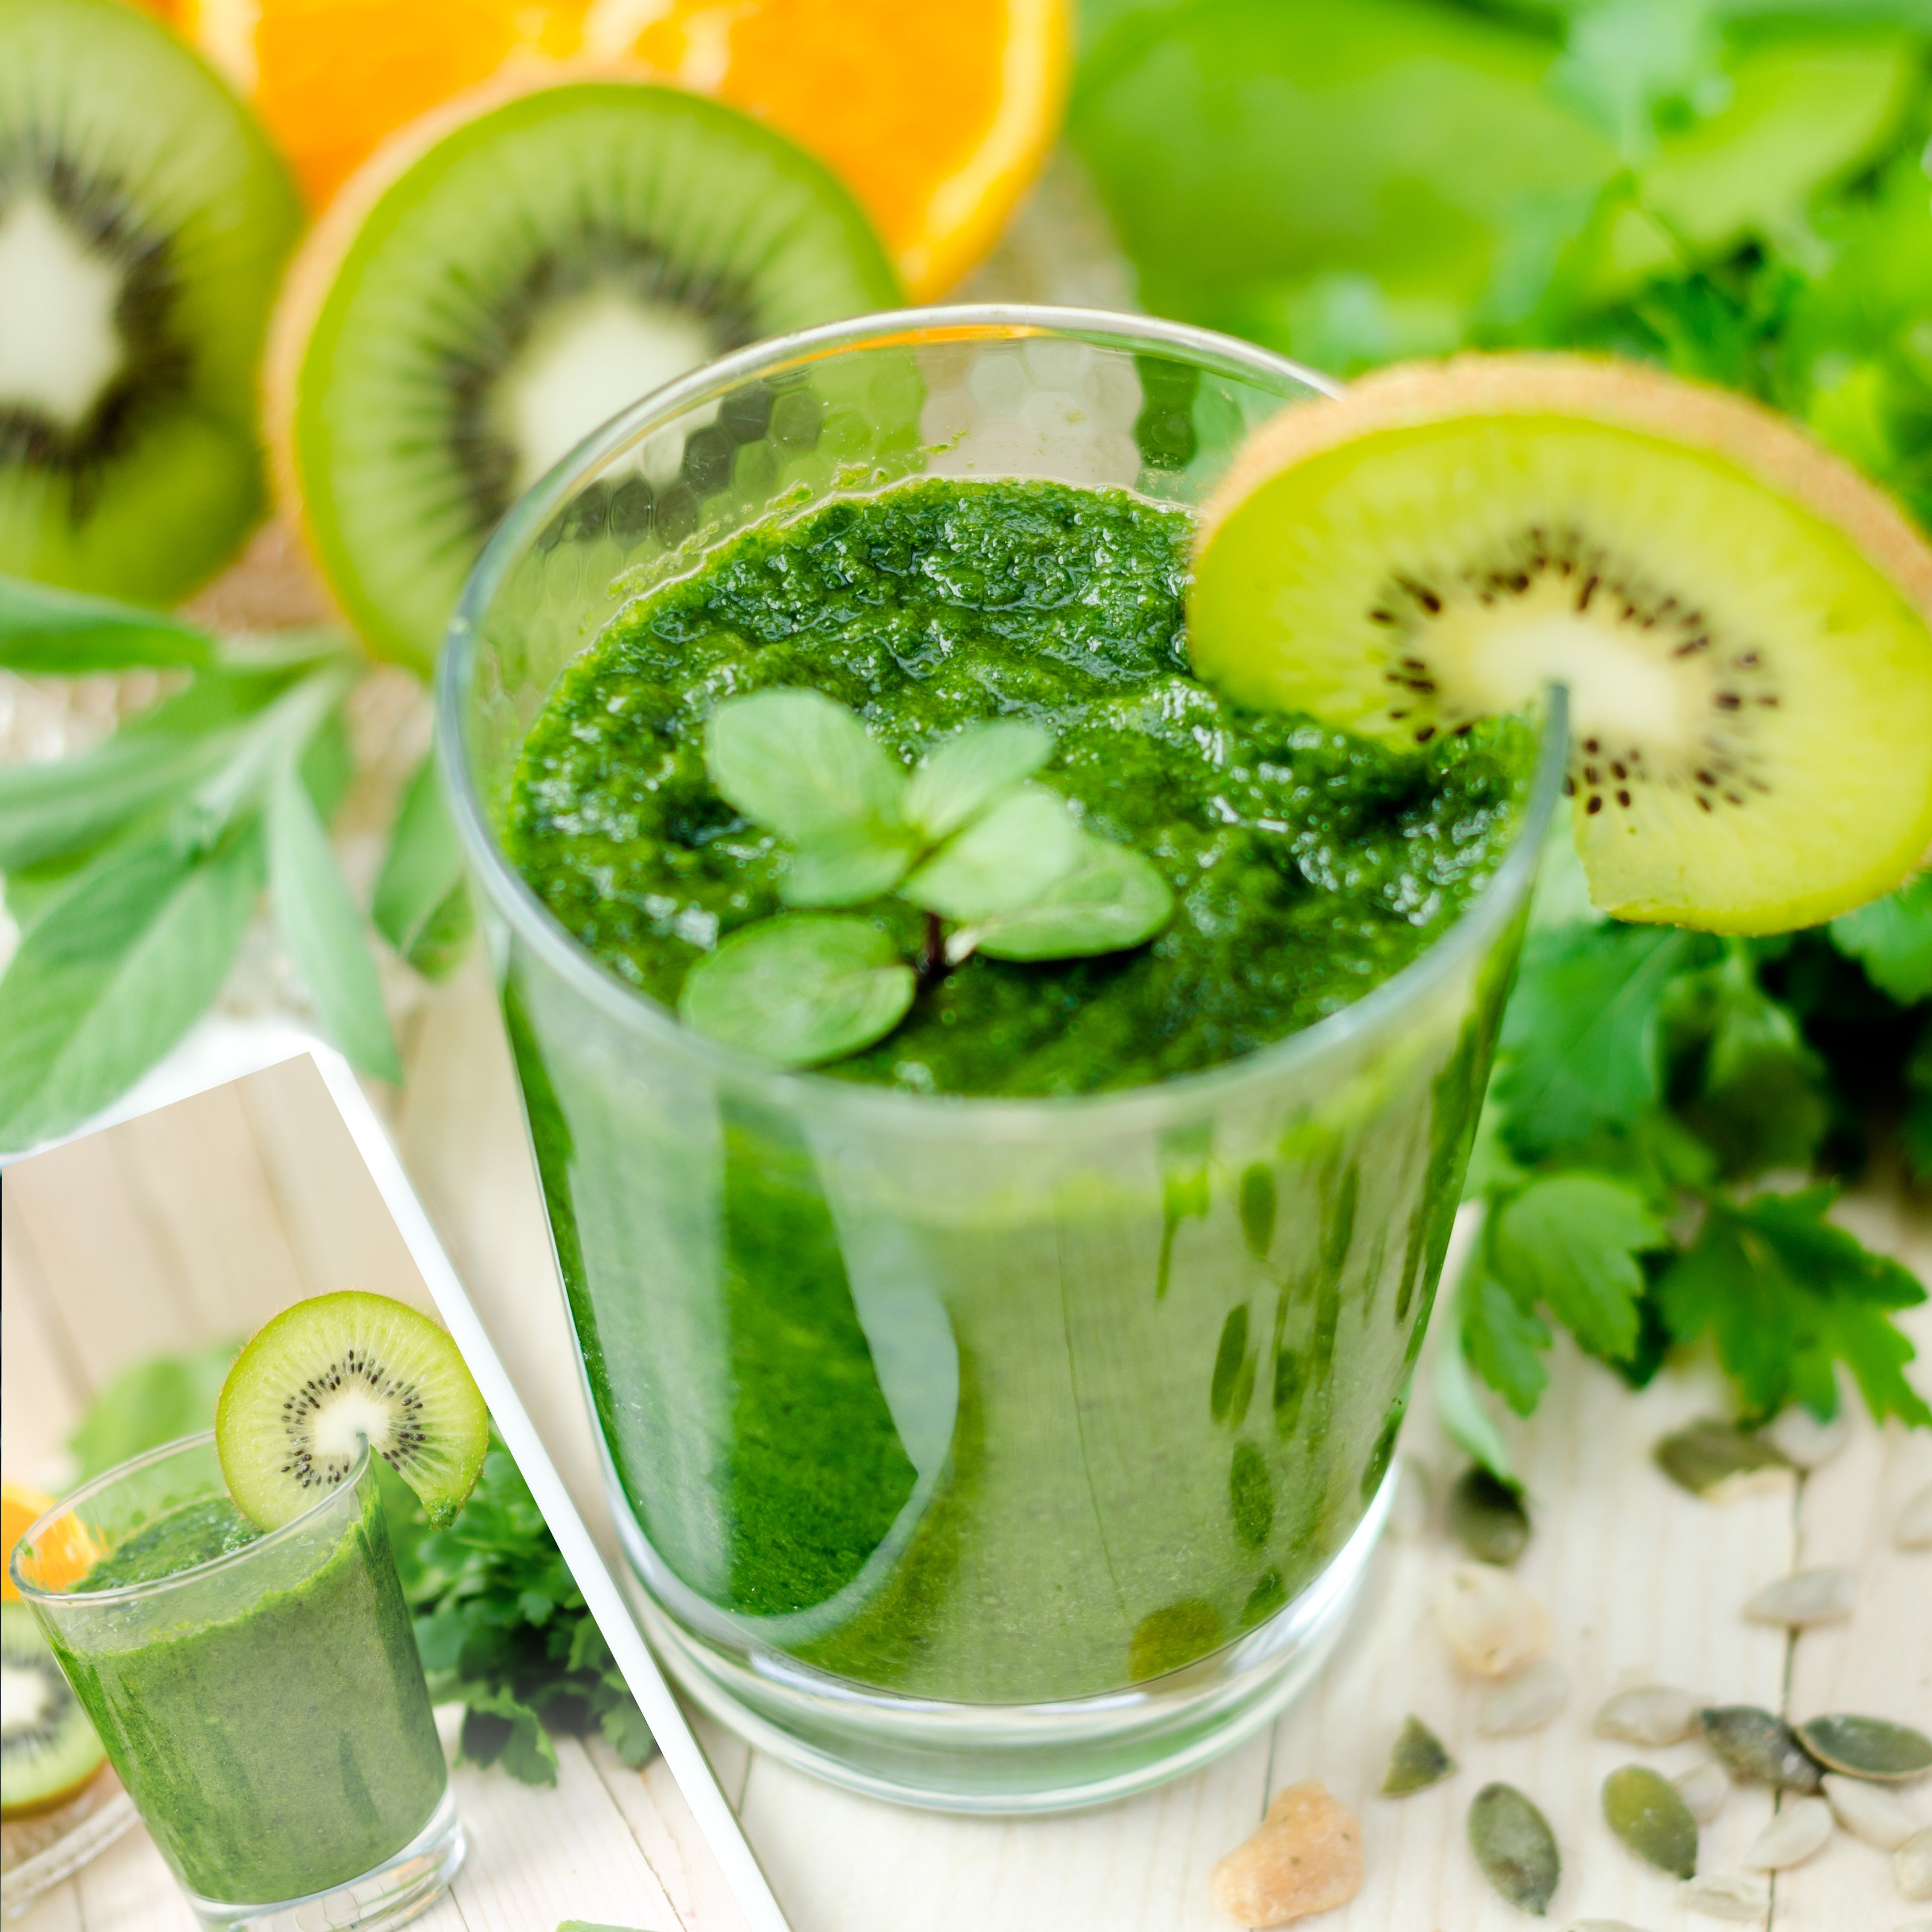 green smoothie in a glass with kiwi slices